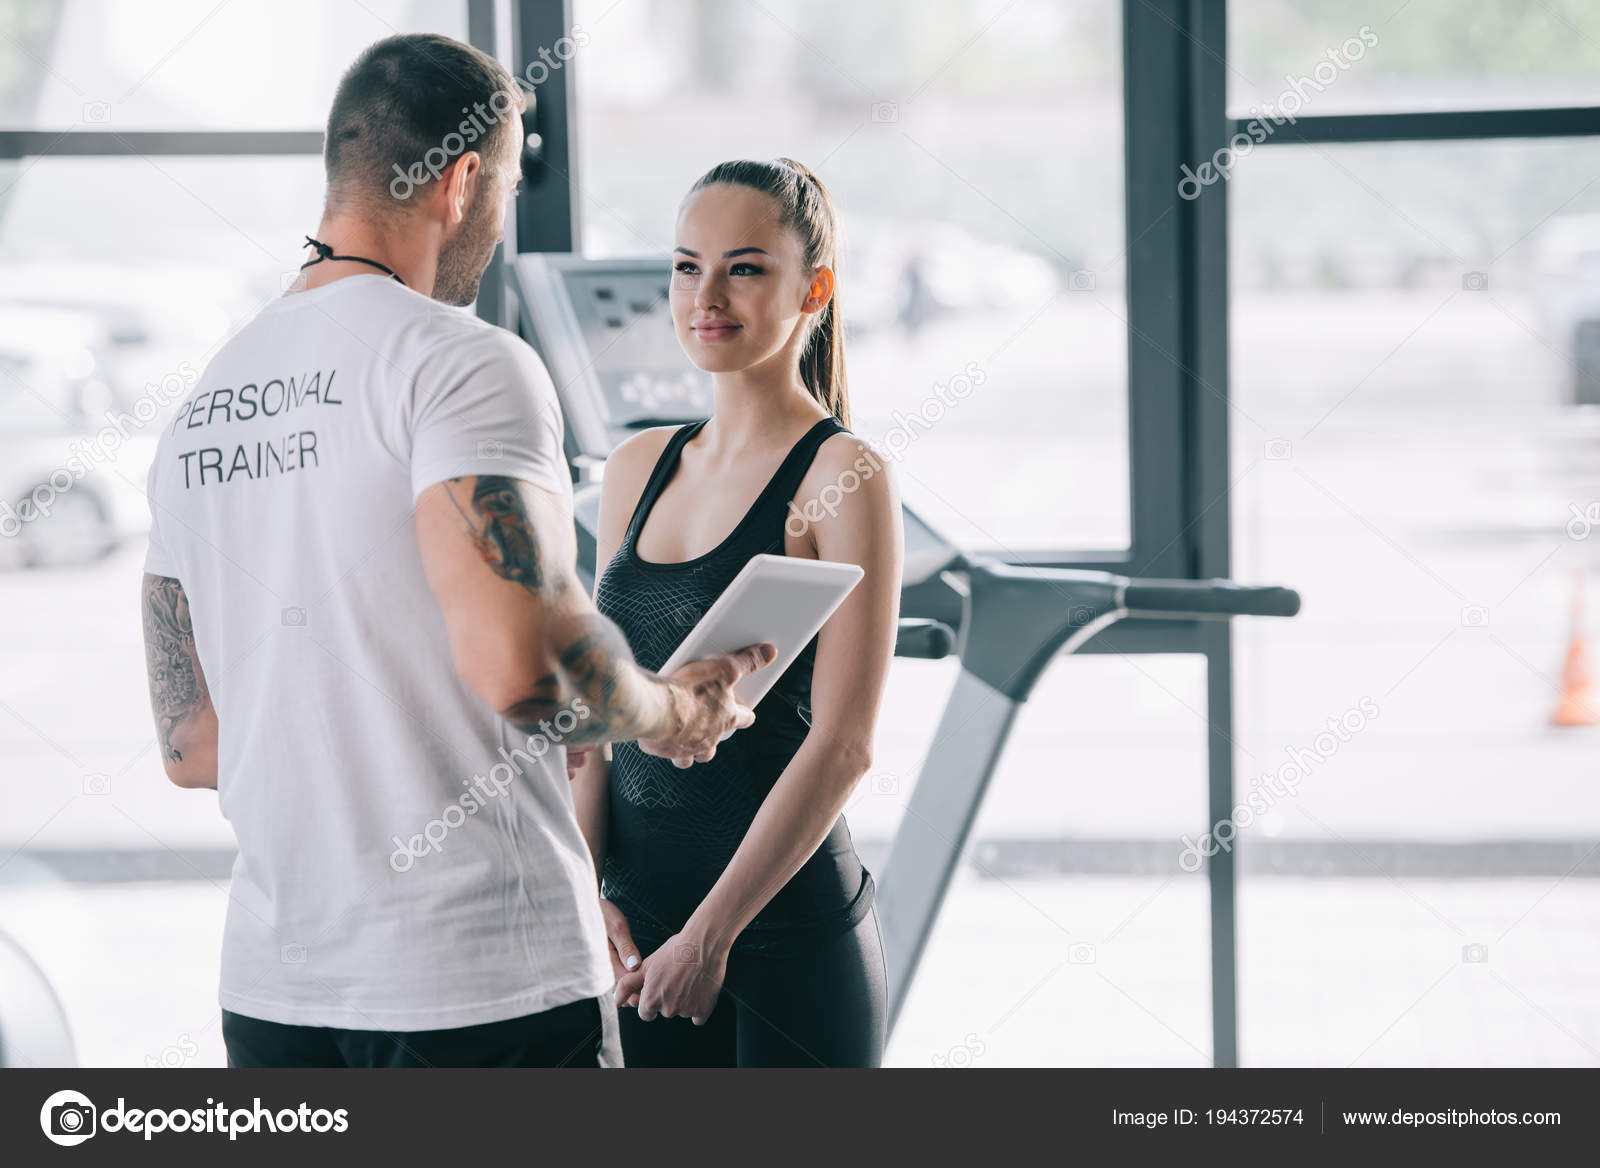 dating a fitness trainer